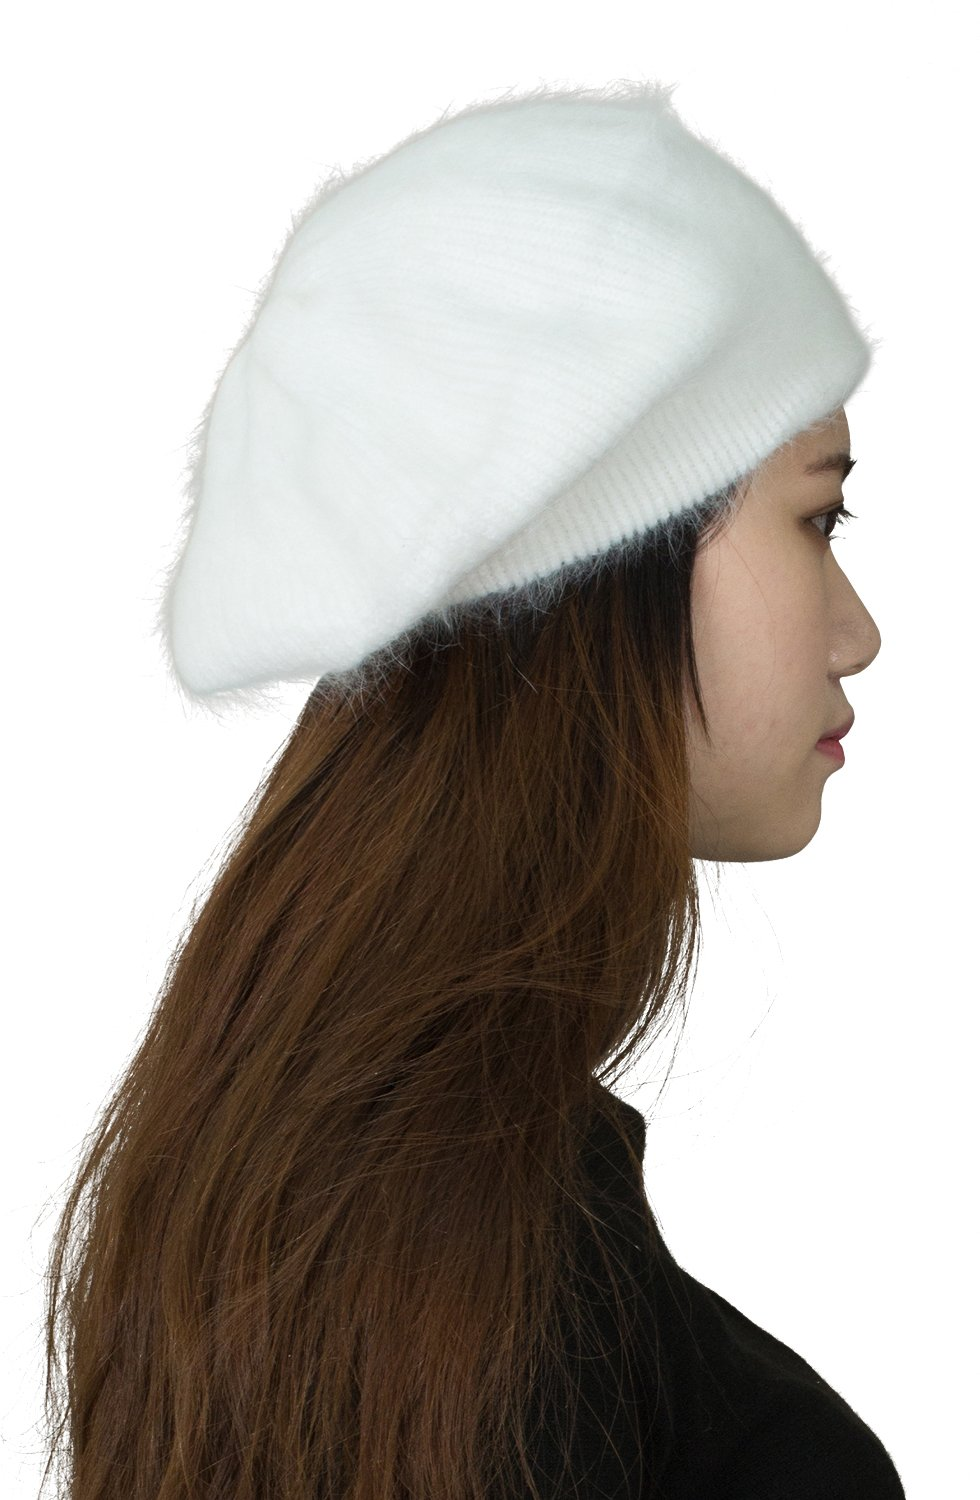 CapHouse Fine Ribbed Womens Angora Knit Winter Beanie Hat,Cream by CapHouse (Image #1)